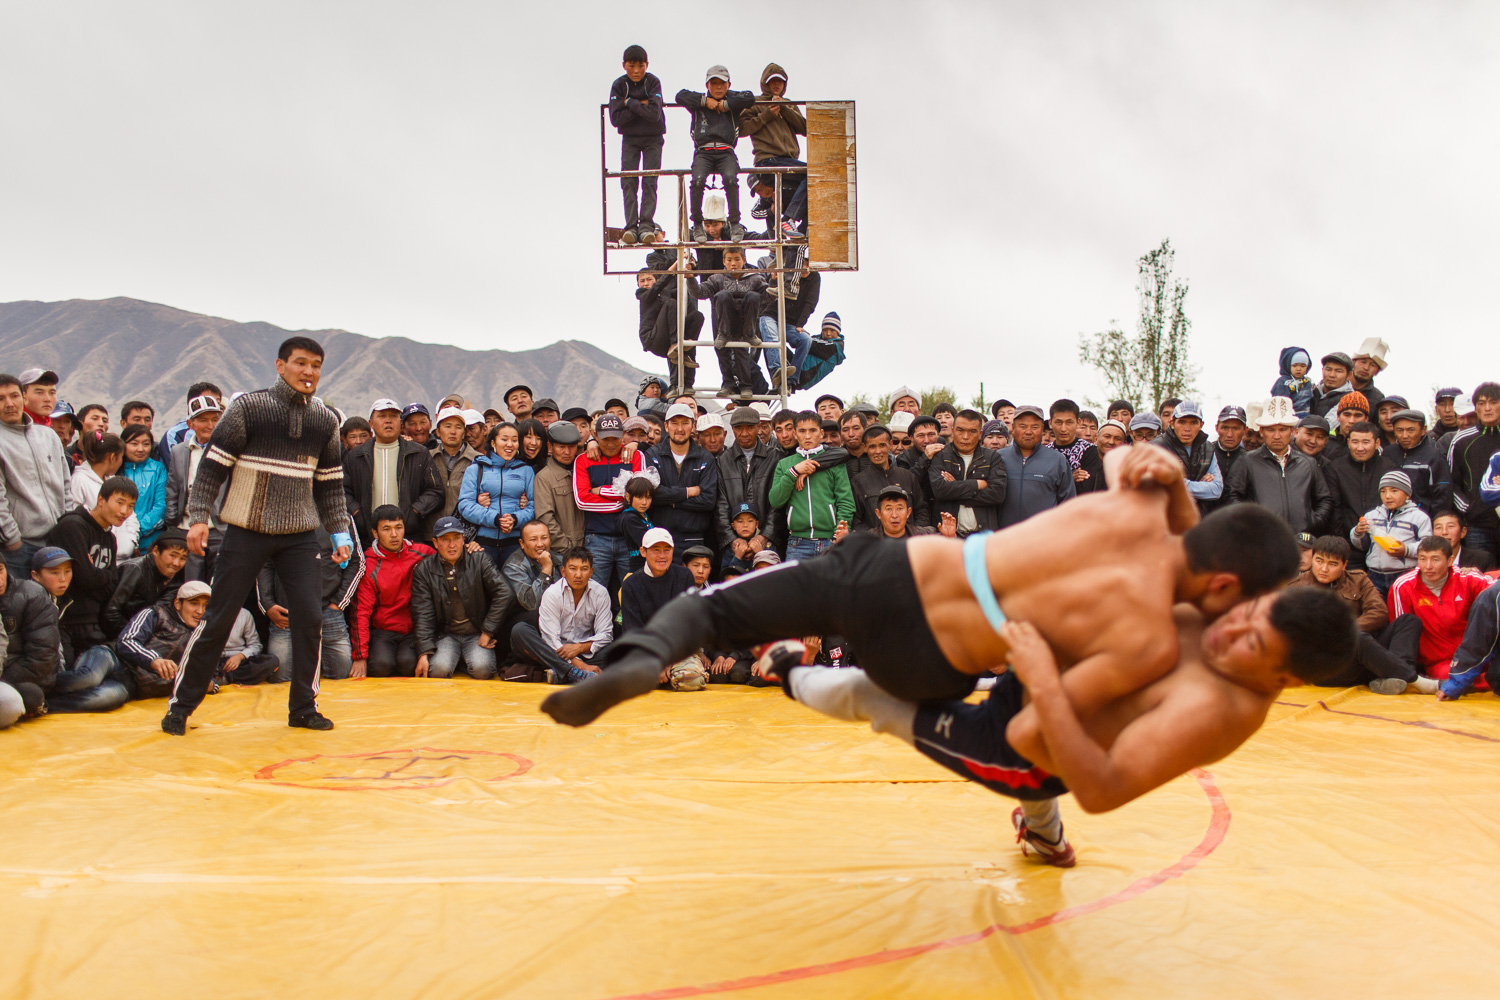 Kyrgyz wrestlers at a village celebration in Ak Bulak, eastern Kyrgyzstan